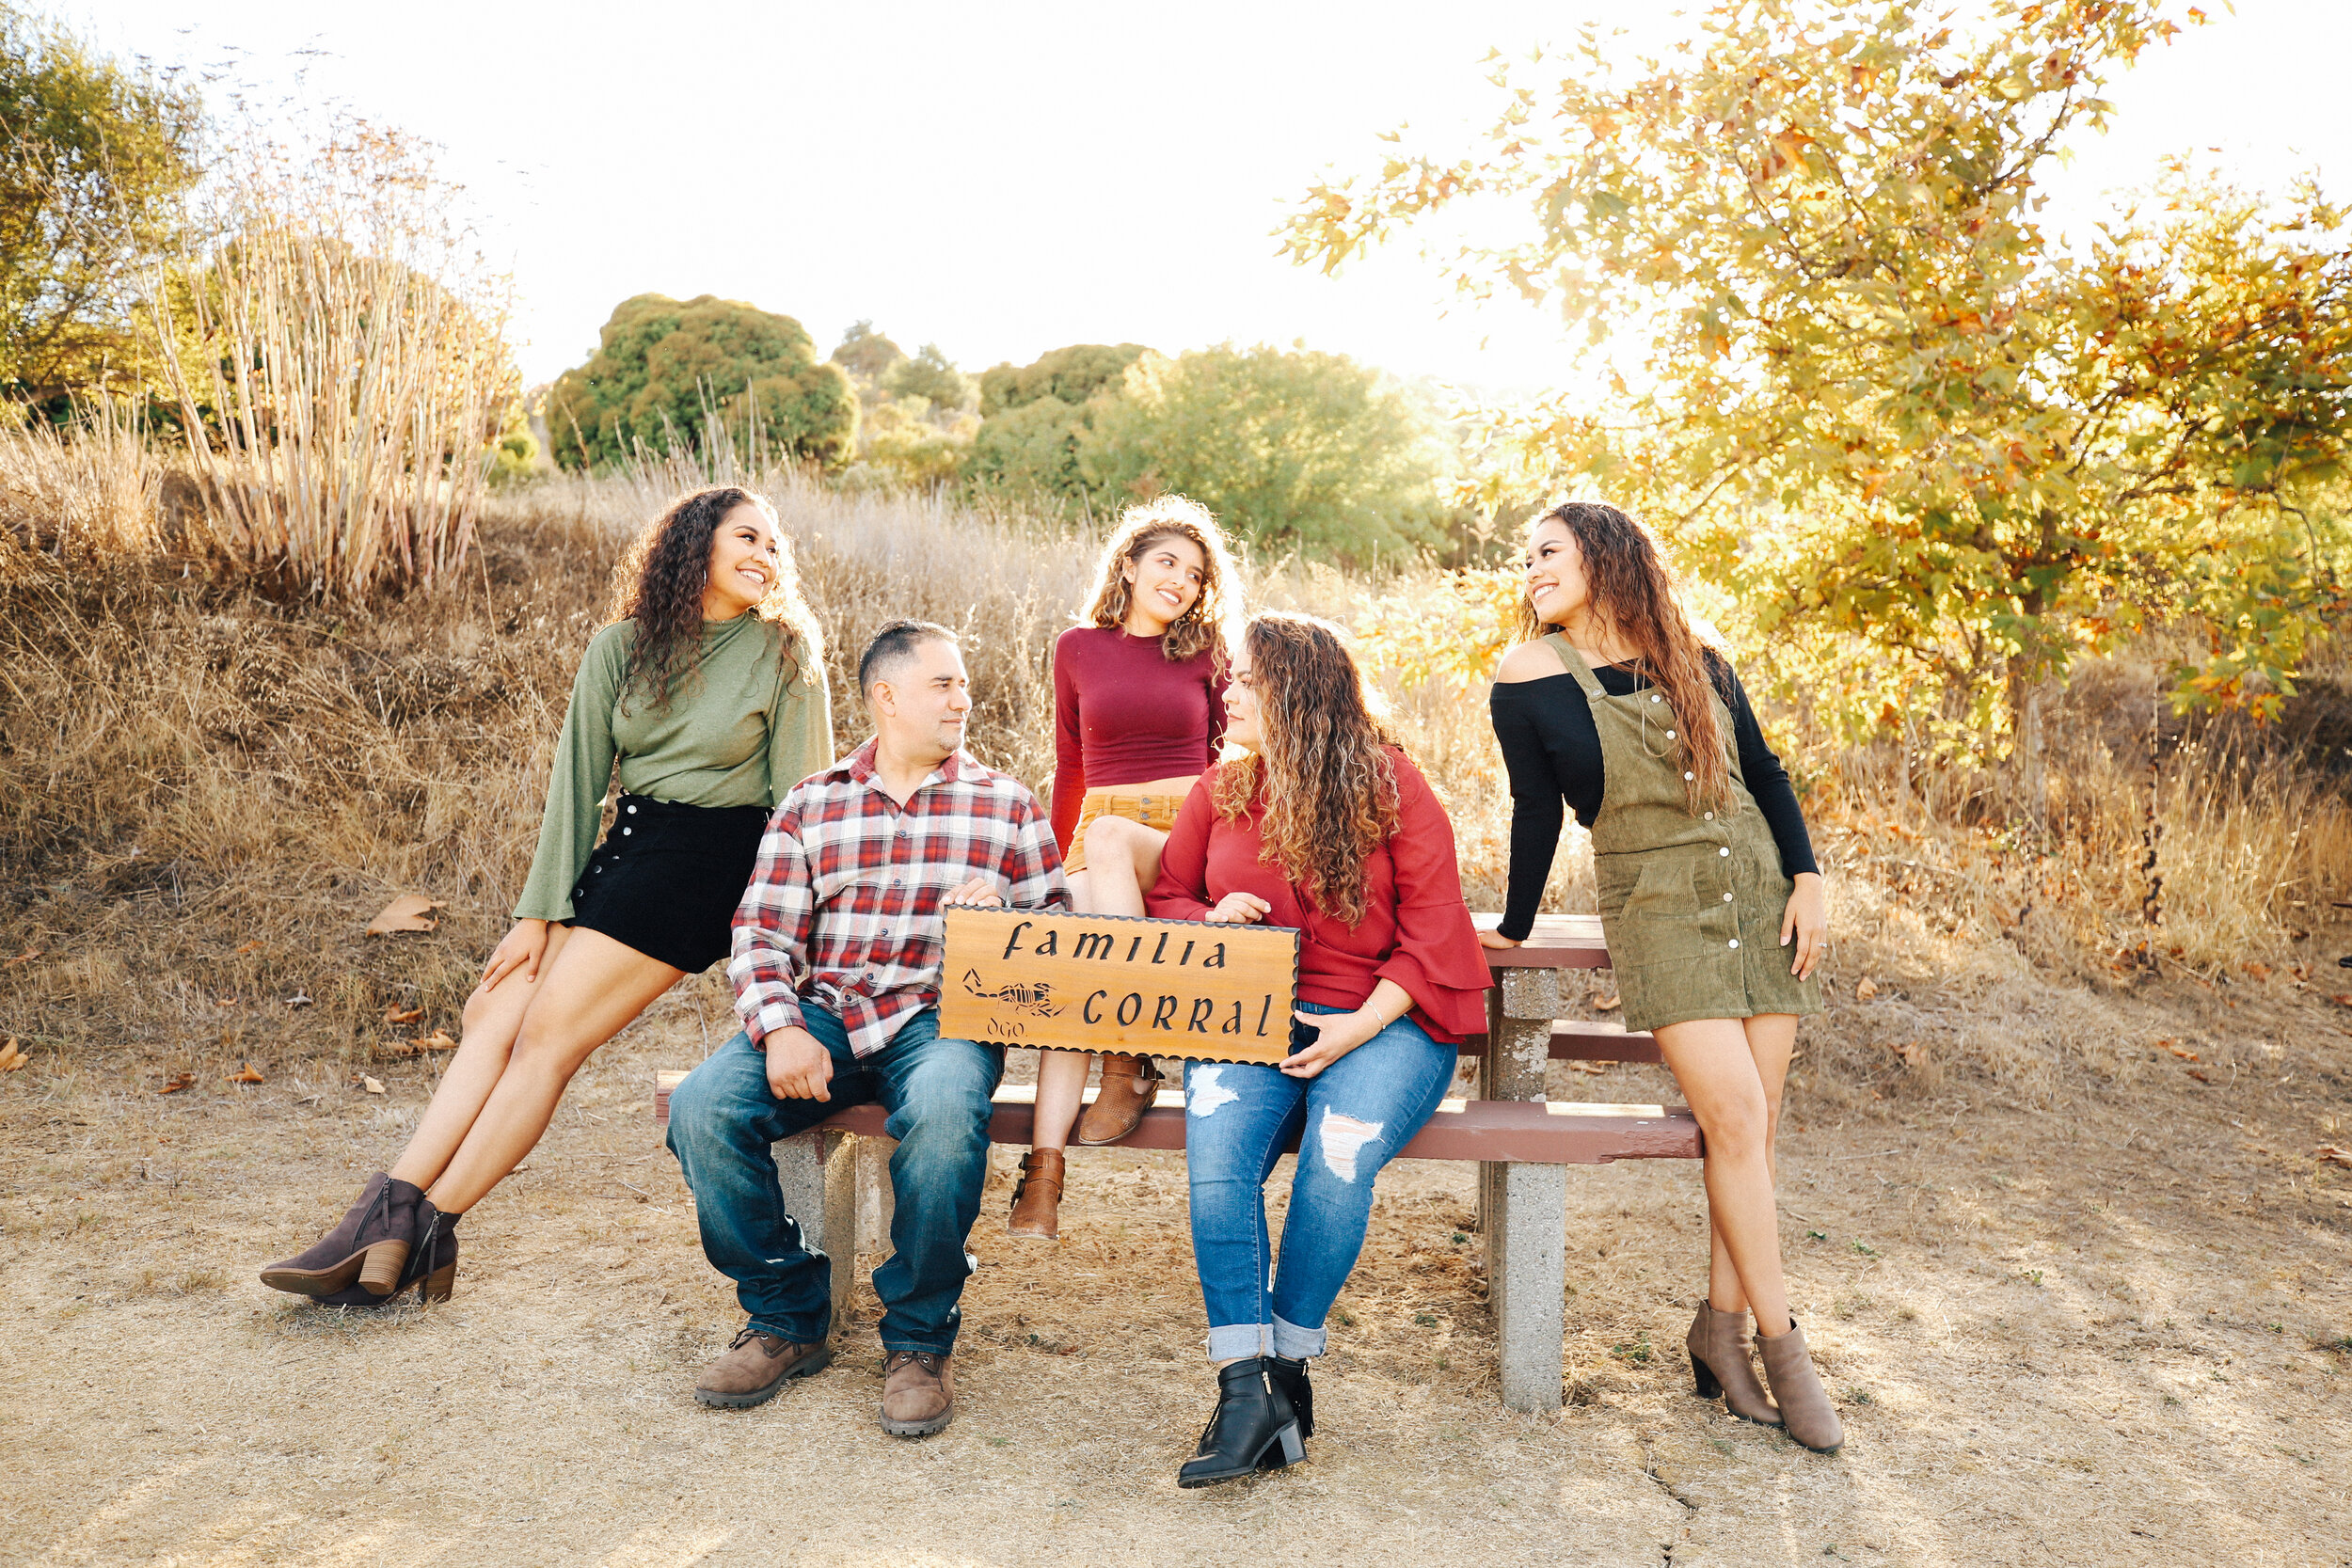 Family & Group photography 2019 | Luis Cubas Photography in California